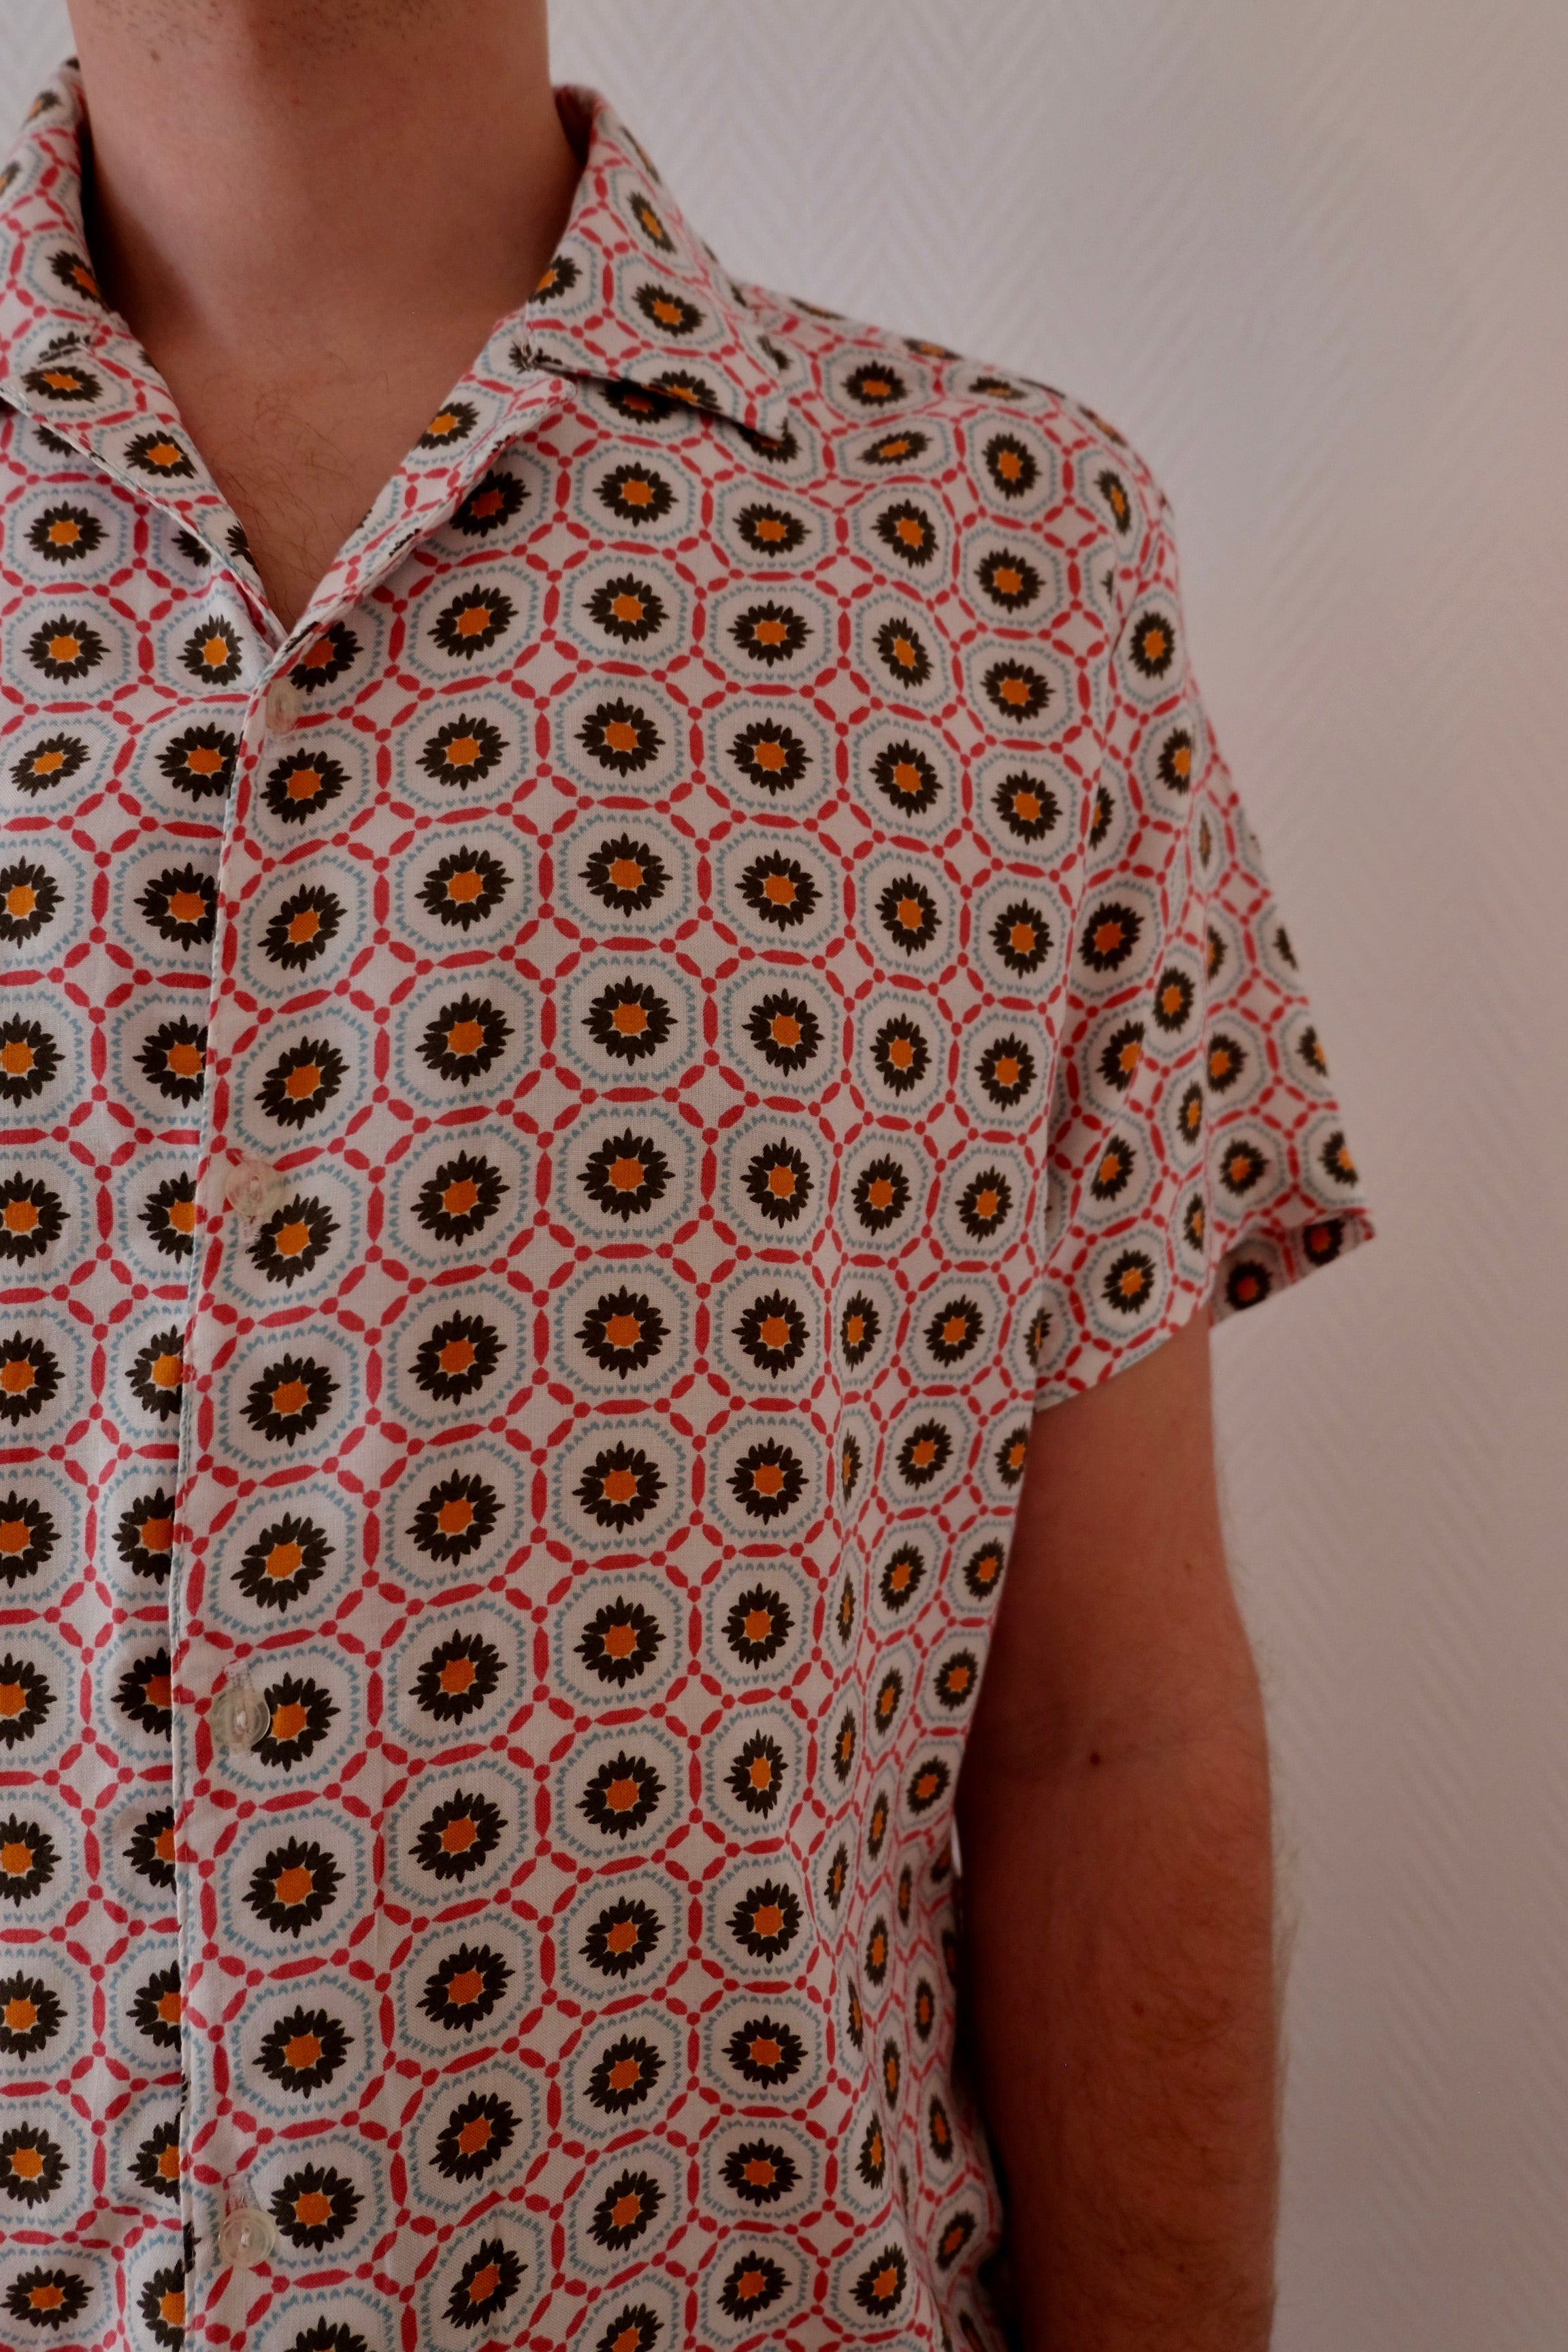 The Floor Tile